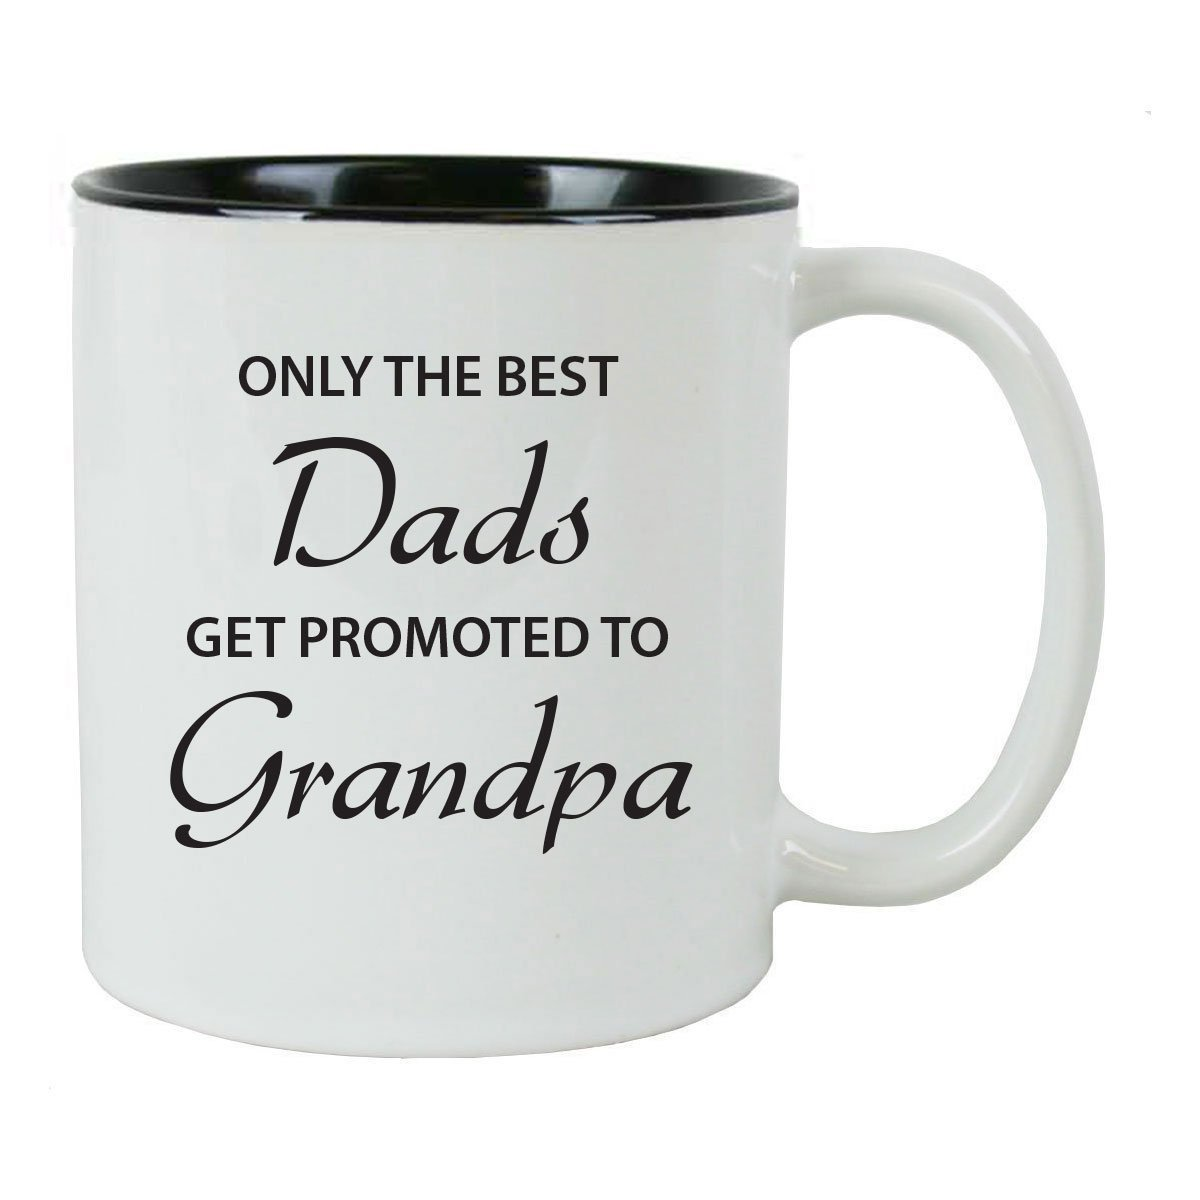 only the best dads get promoted to grandpa 11 oz white ceramic coffee mug black - Best Dad Christmas Gifts